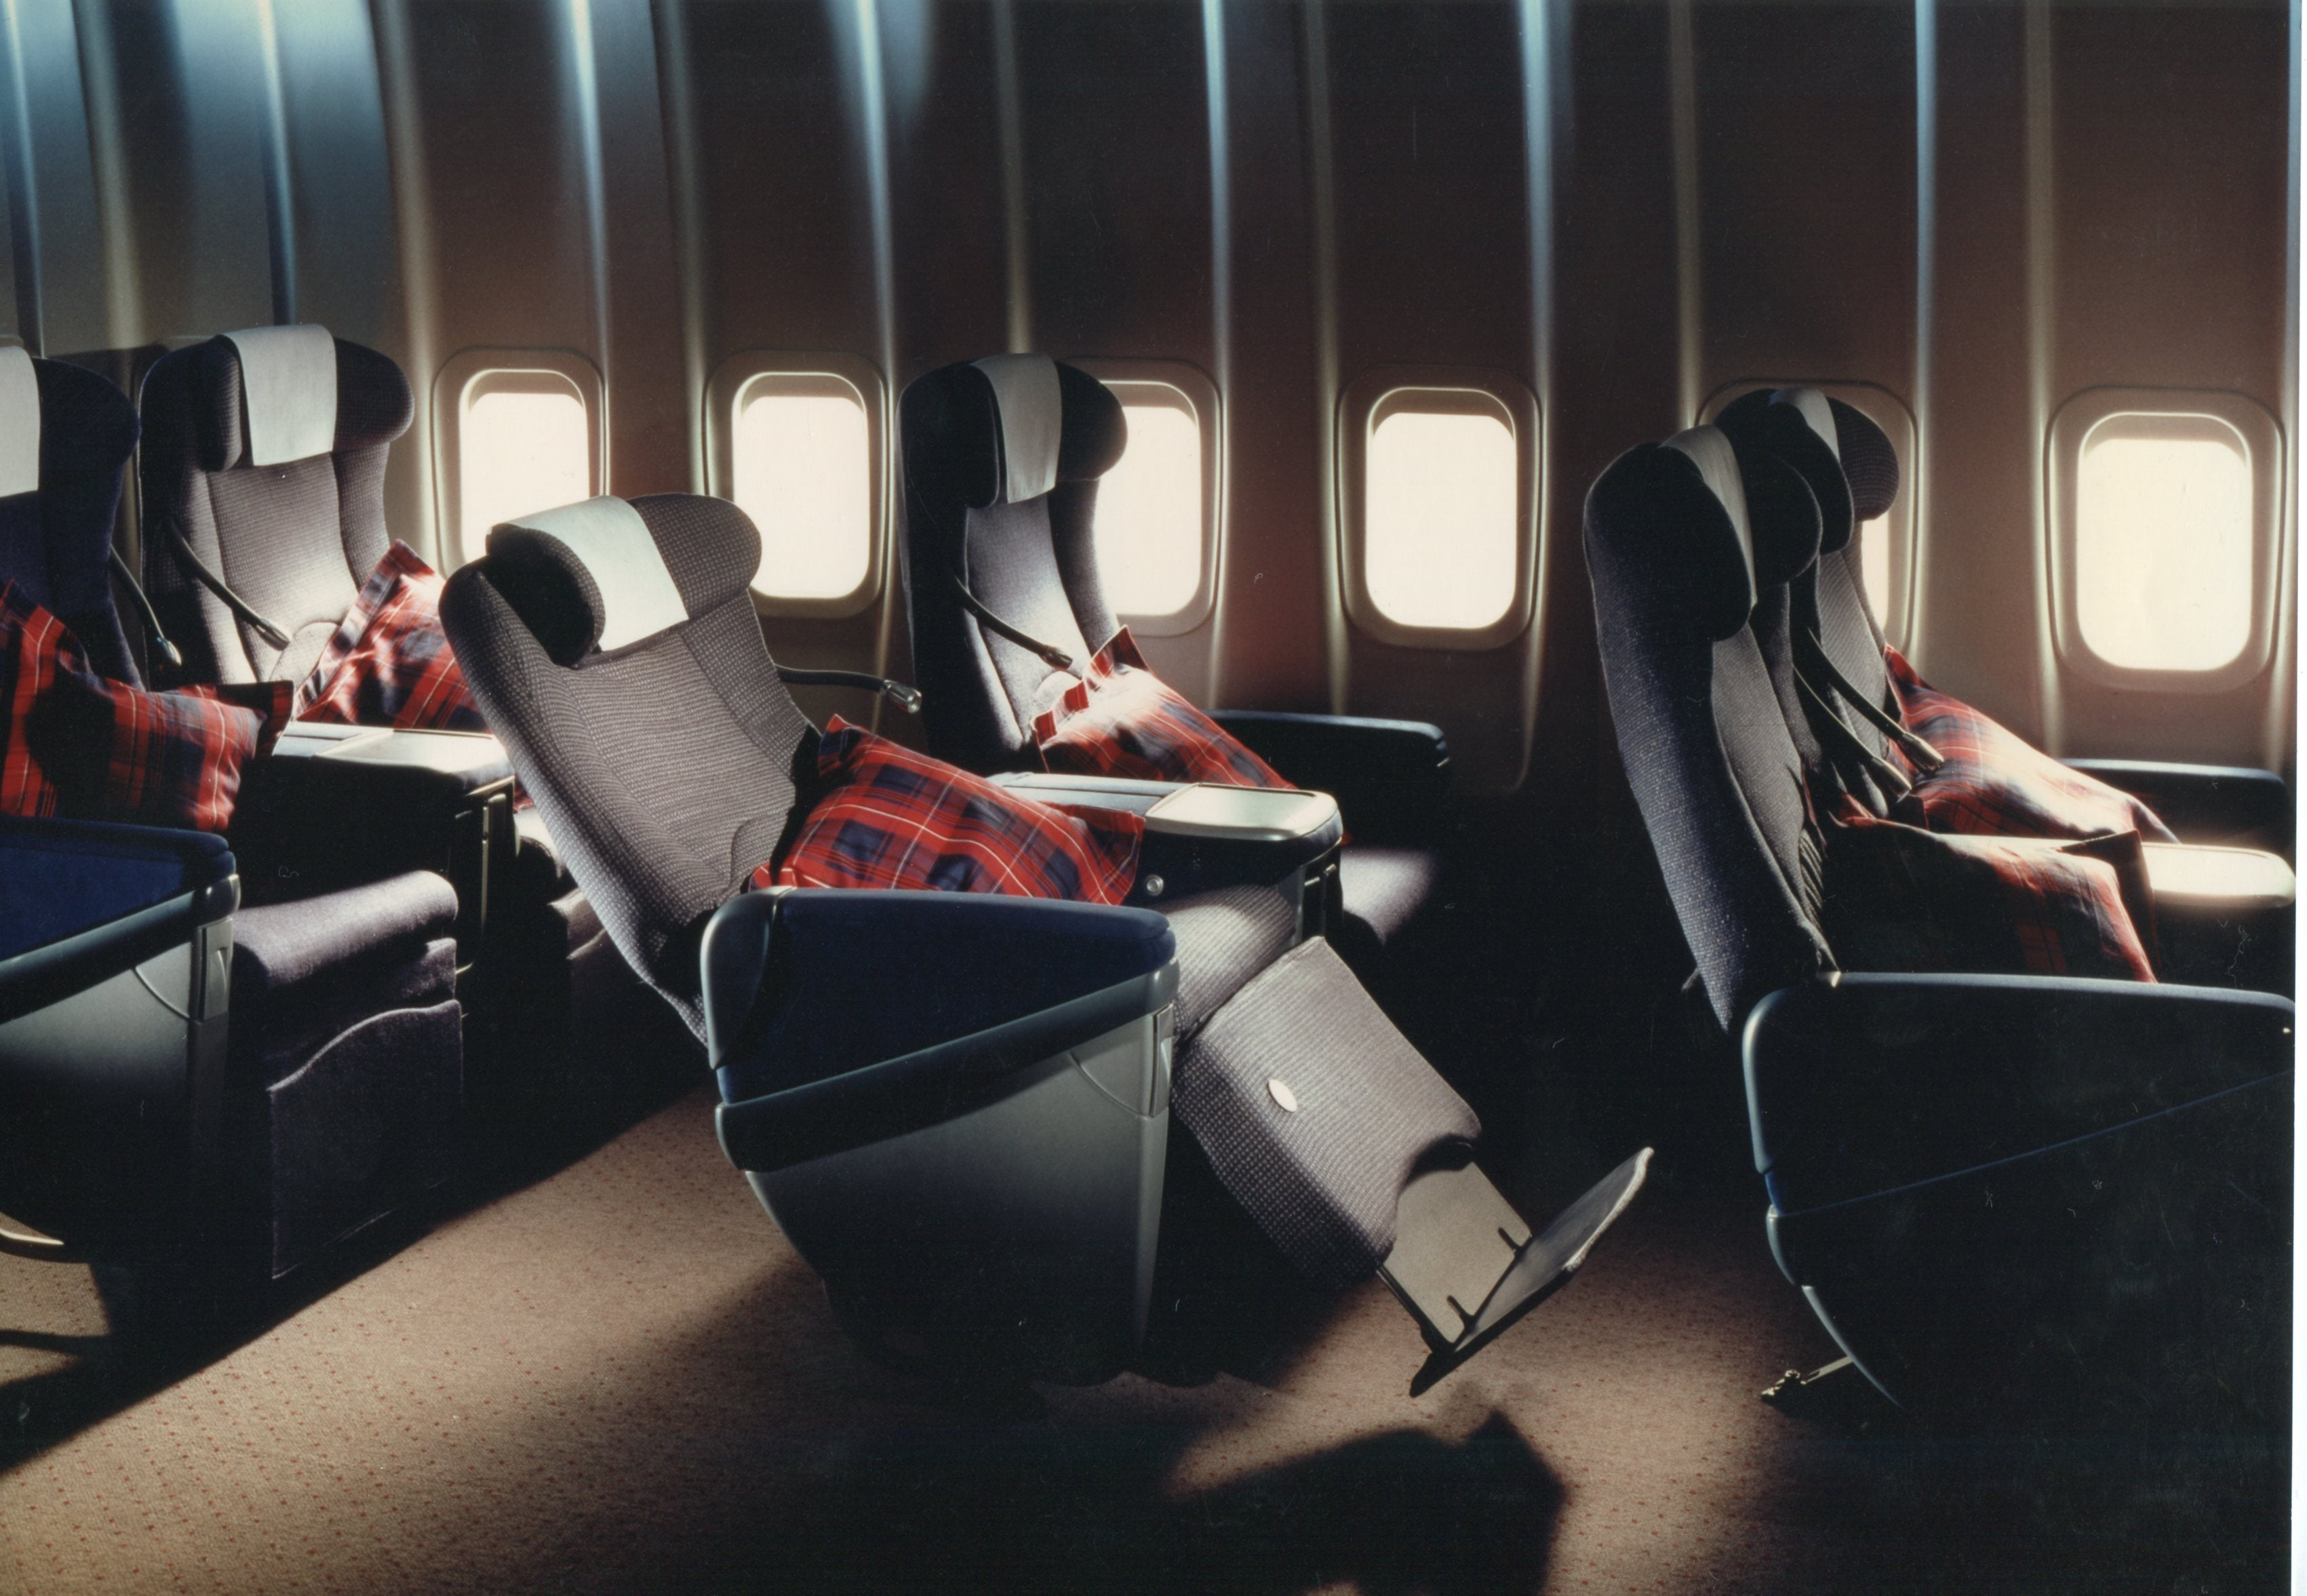 How We Got to Flat: The Evolution of Business Class